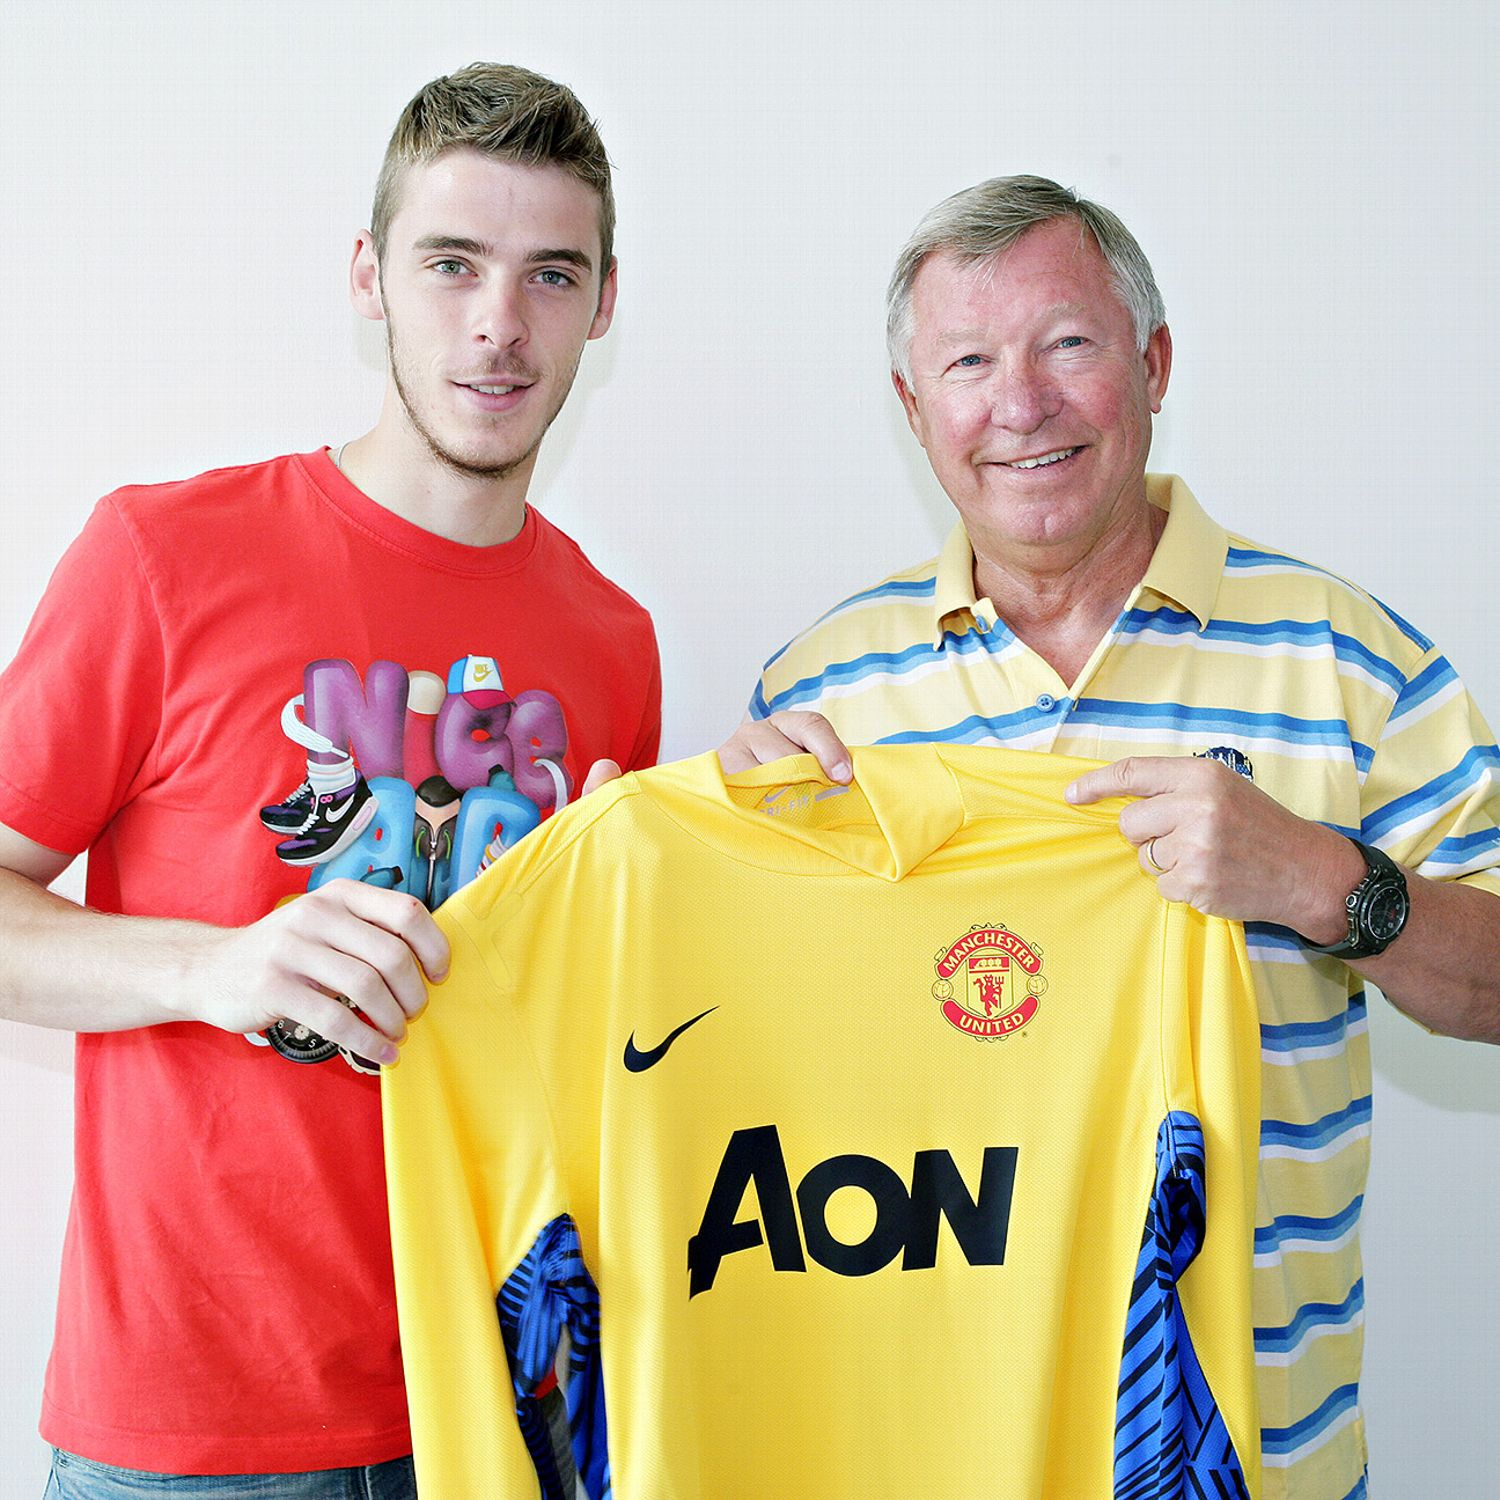 Epl Matches Live On Rcti Indonesia Tv Channel: Sir Alex Ferguson Heaps Praise On